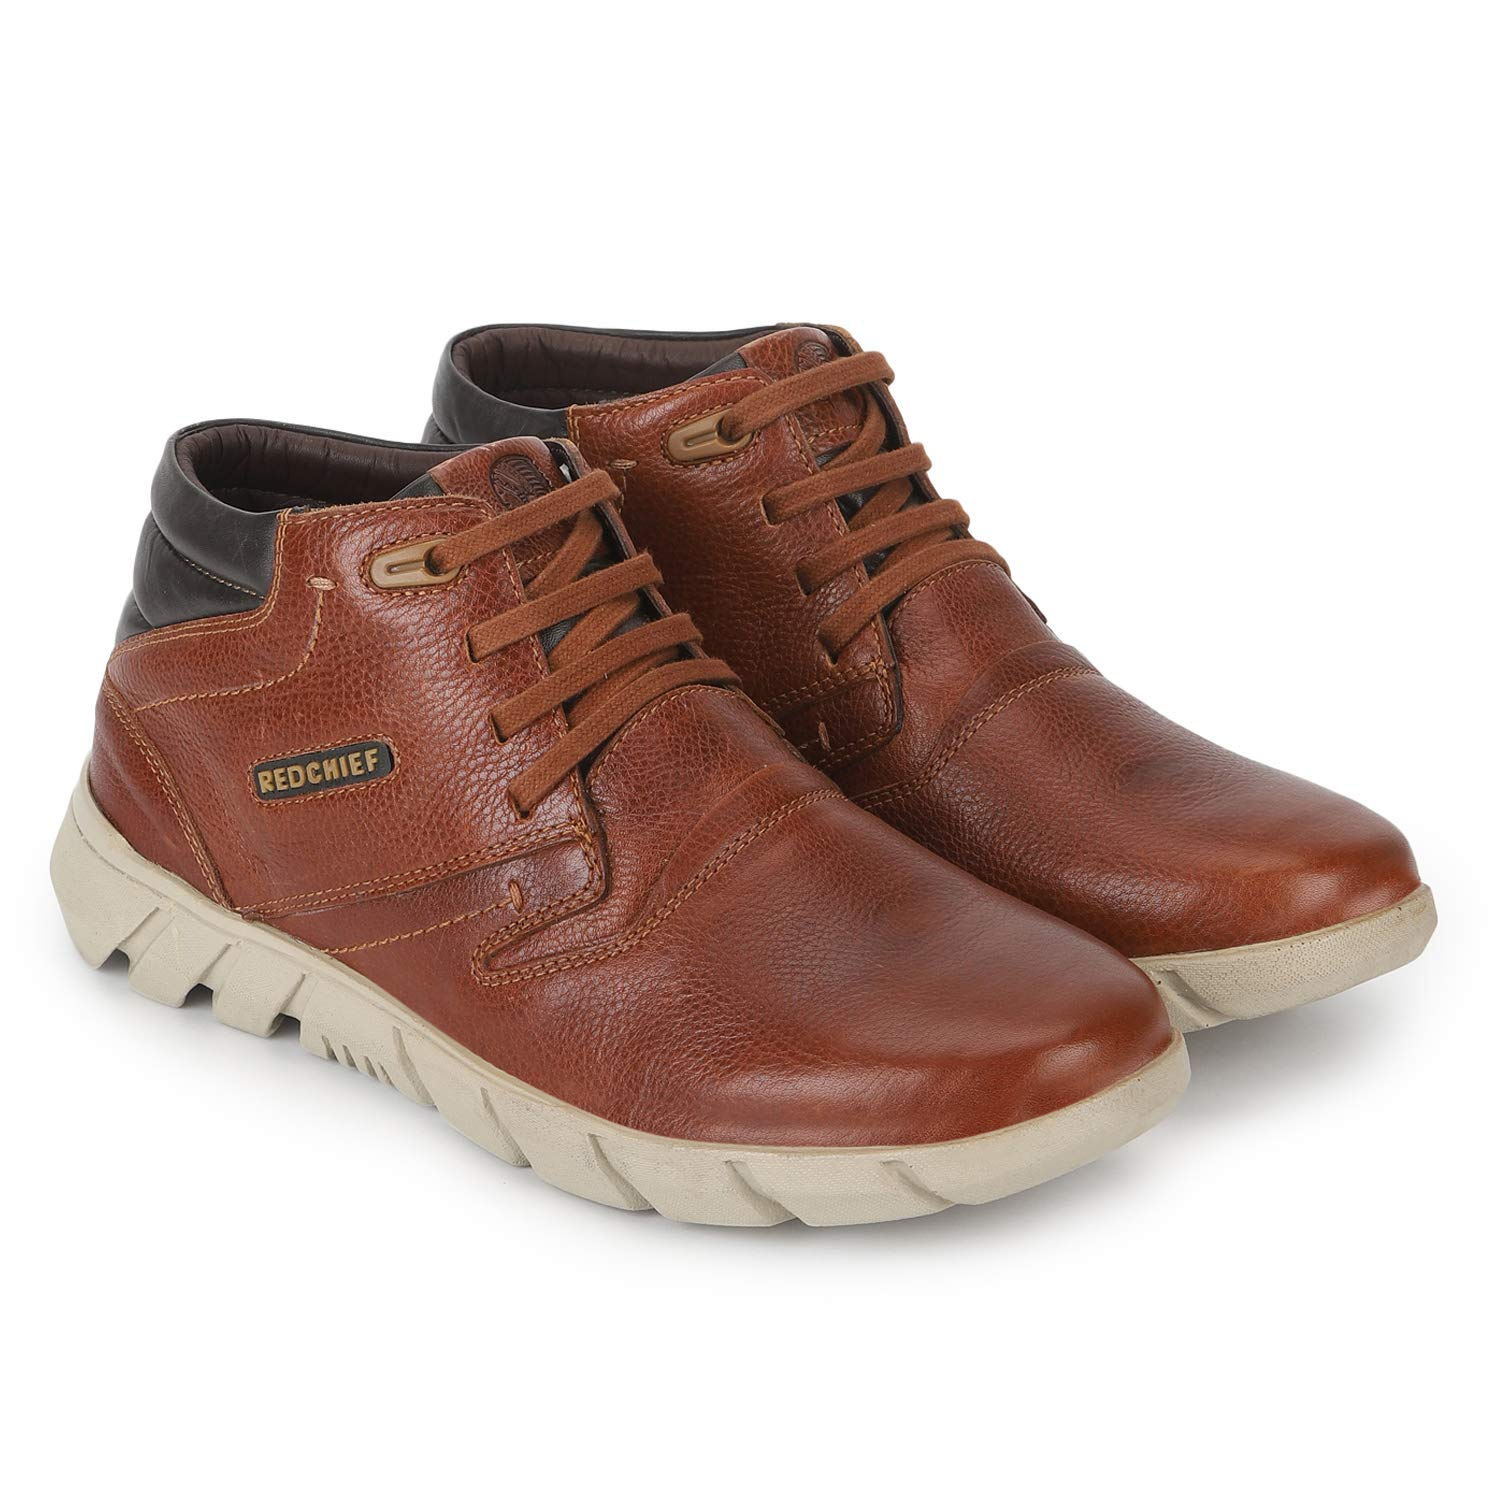 Red Chief Men's Casual Shoes at Amazon